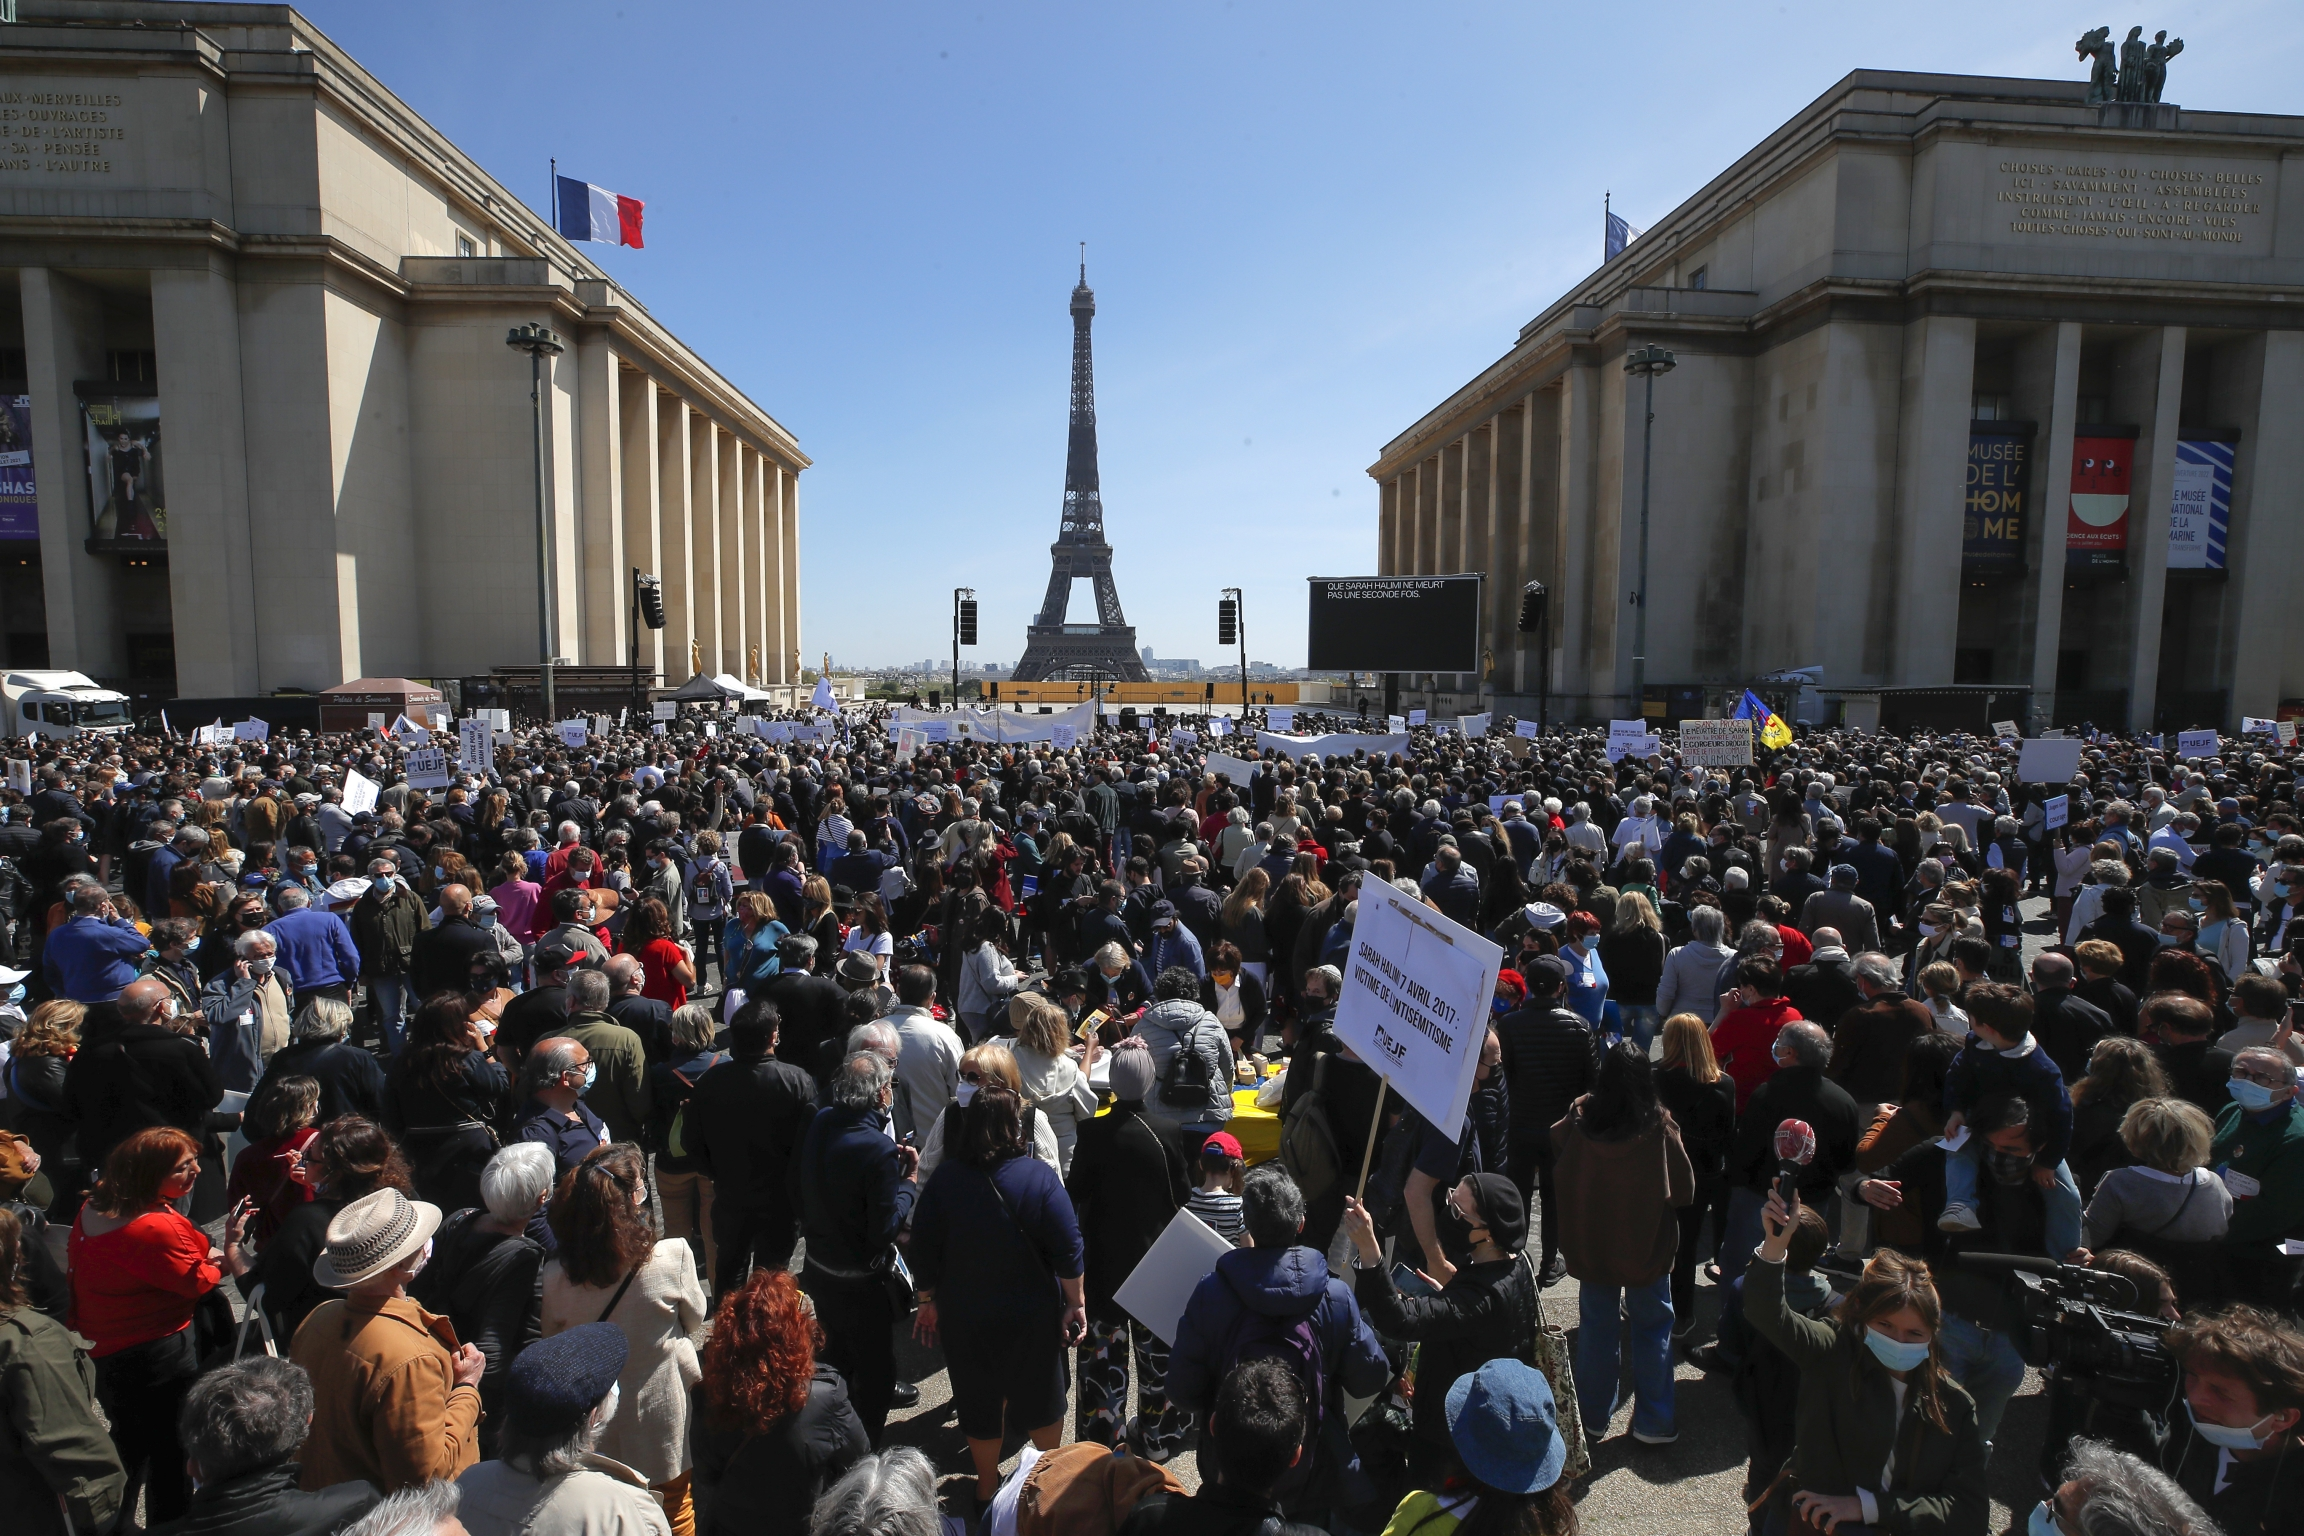 People stage a protest organized by Jewish associations, who say justice has not been done for the killing of French Jewish woman Sarah Halimi, at Trocadero Plaza near Eiffel Tower in Paris, Sunday, April 25, 2021.